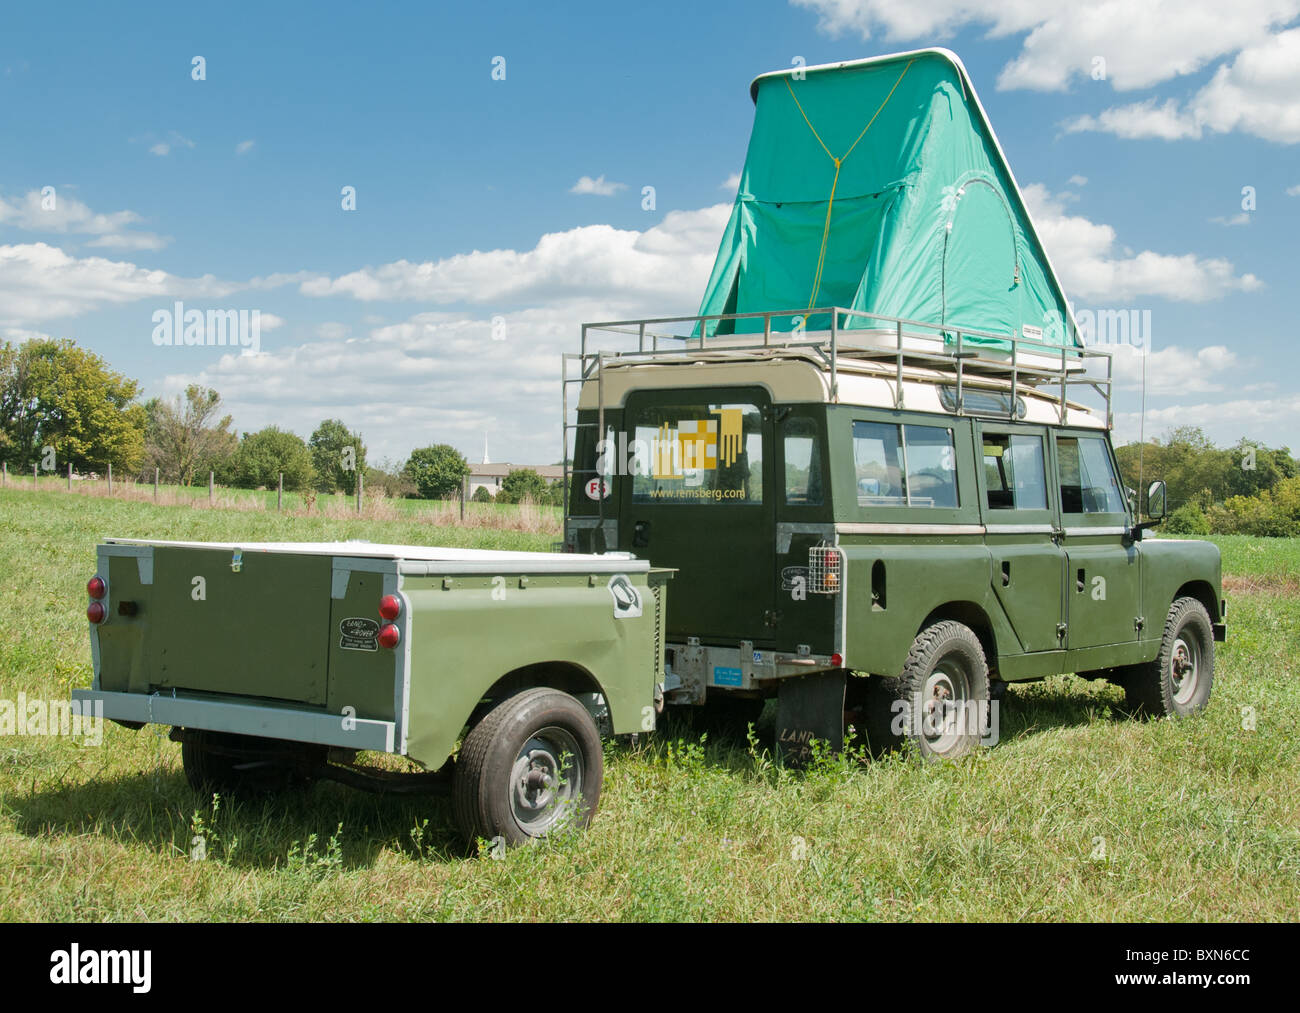 Land Rover Series 2a 109 with Autohome Columbia roof top tent and trailer & Land Rover Series 2a 109 with Autohome Columbia roof top tent and ...